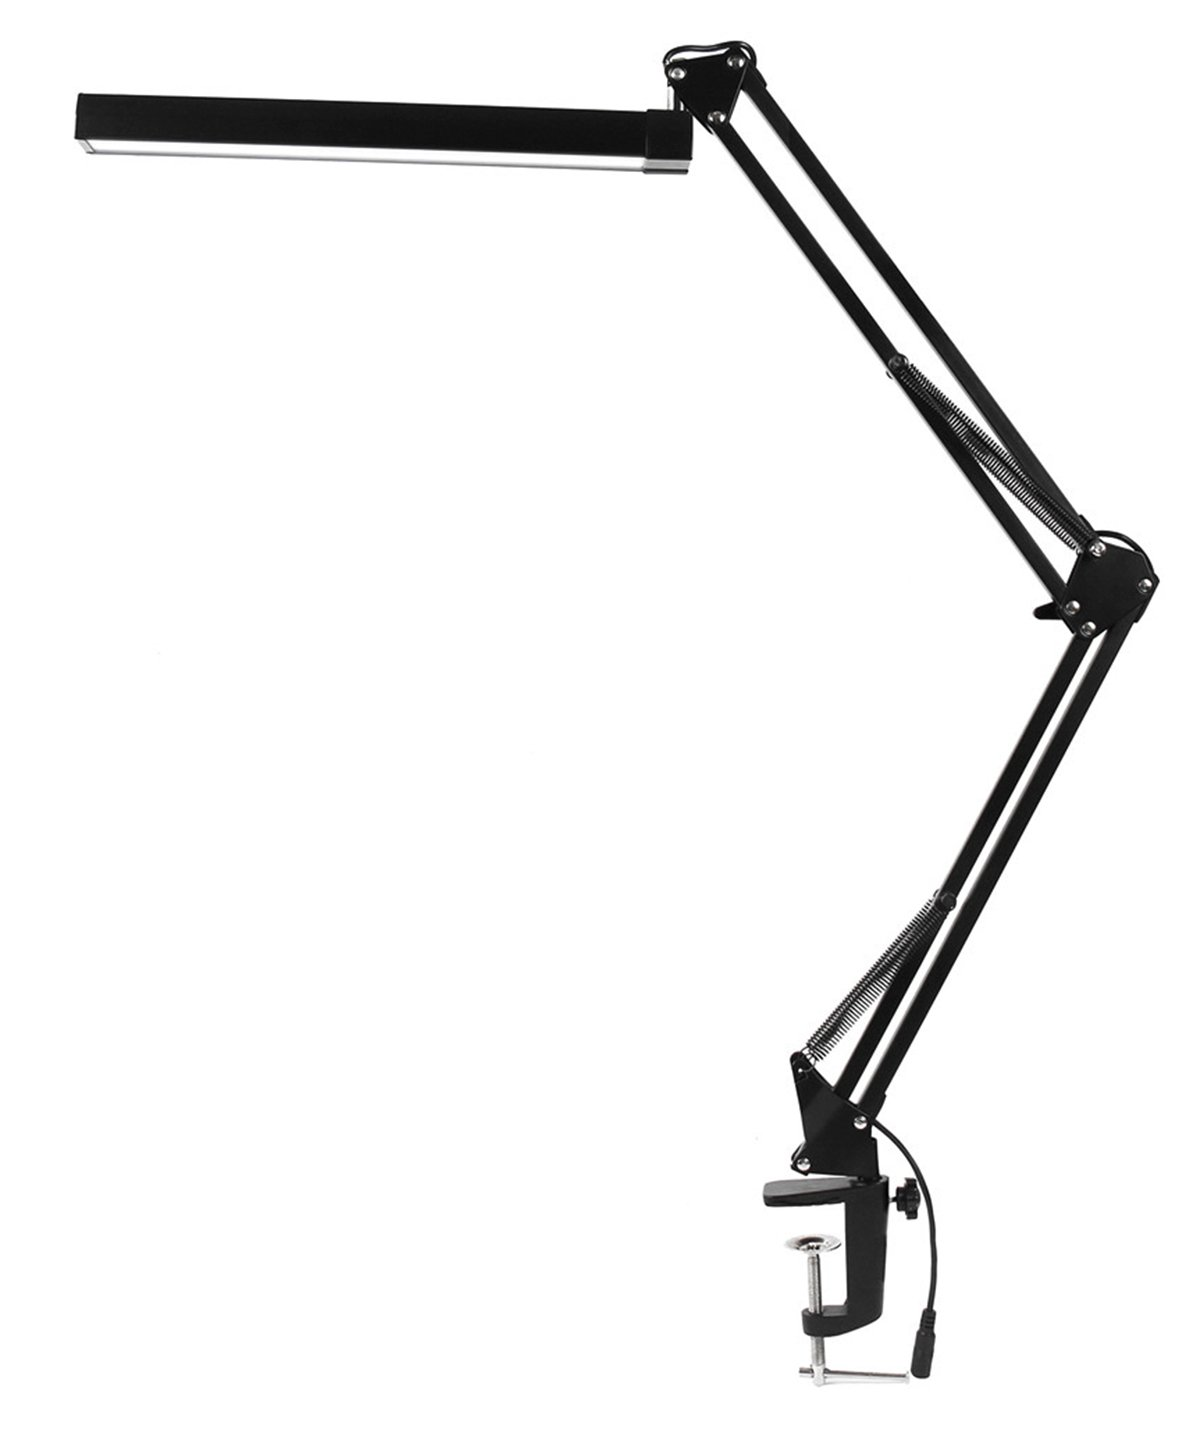 LED Desk Lamp with Clamp - KANARS Premium Aluminum Swing Arm Drafting Table Lamp Bright - 740 LM - 3 Level Dimmer - Warm/White Light - Touch Control - Highly Adjustable - 7.4W - Black